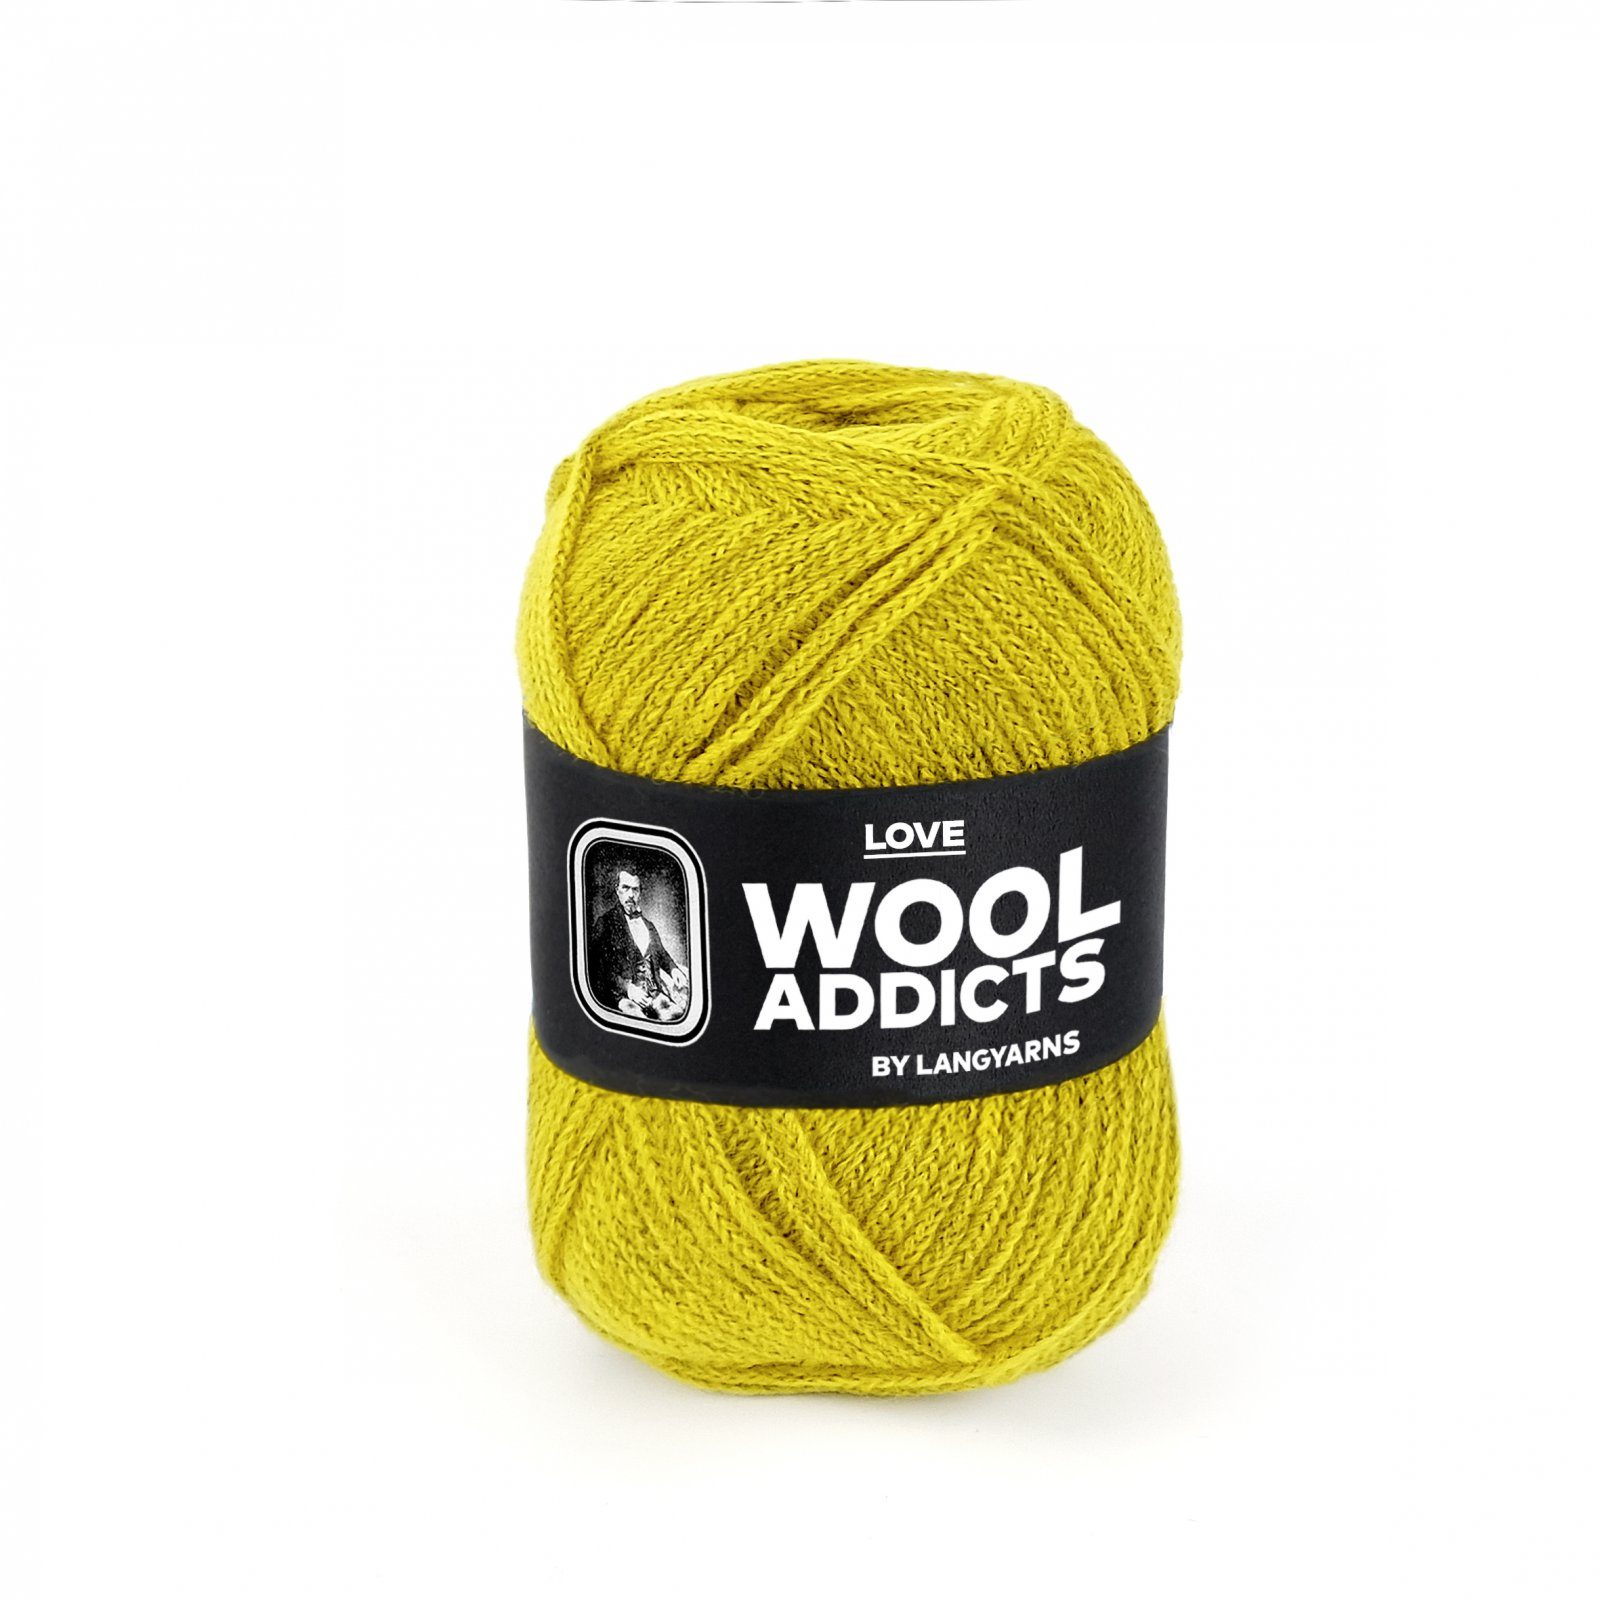 LOVE - WoolAddicts by Lang